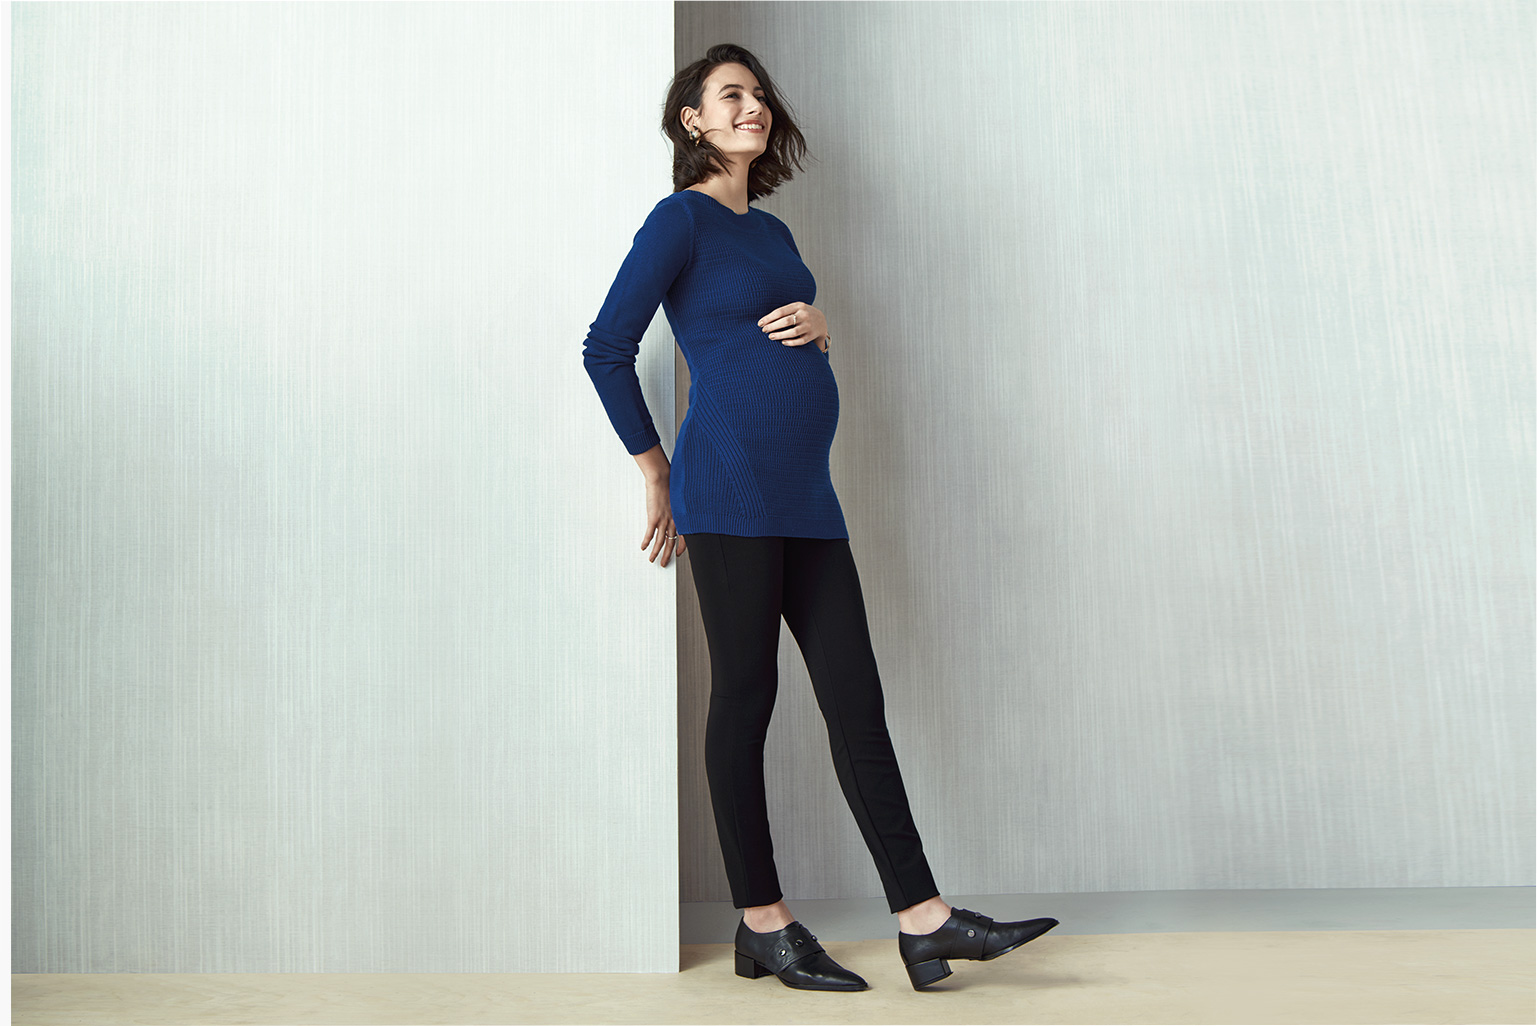 Smarty Pants. Tapered leg with a built-in belly panel for a fit that has you covered from bump to baby